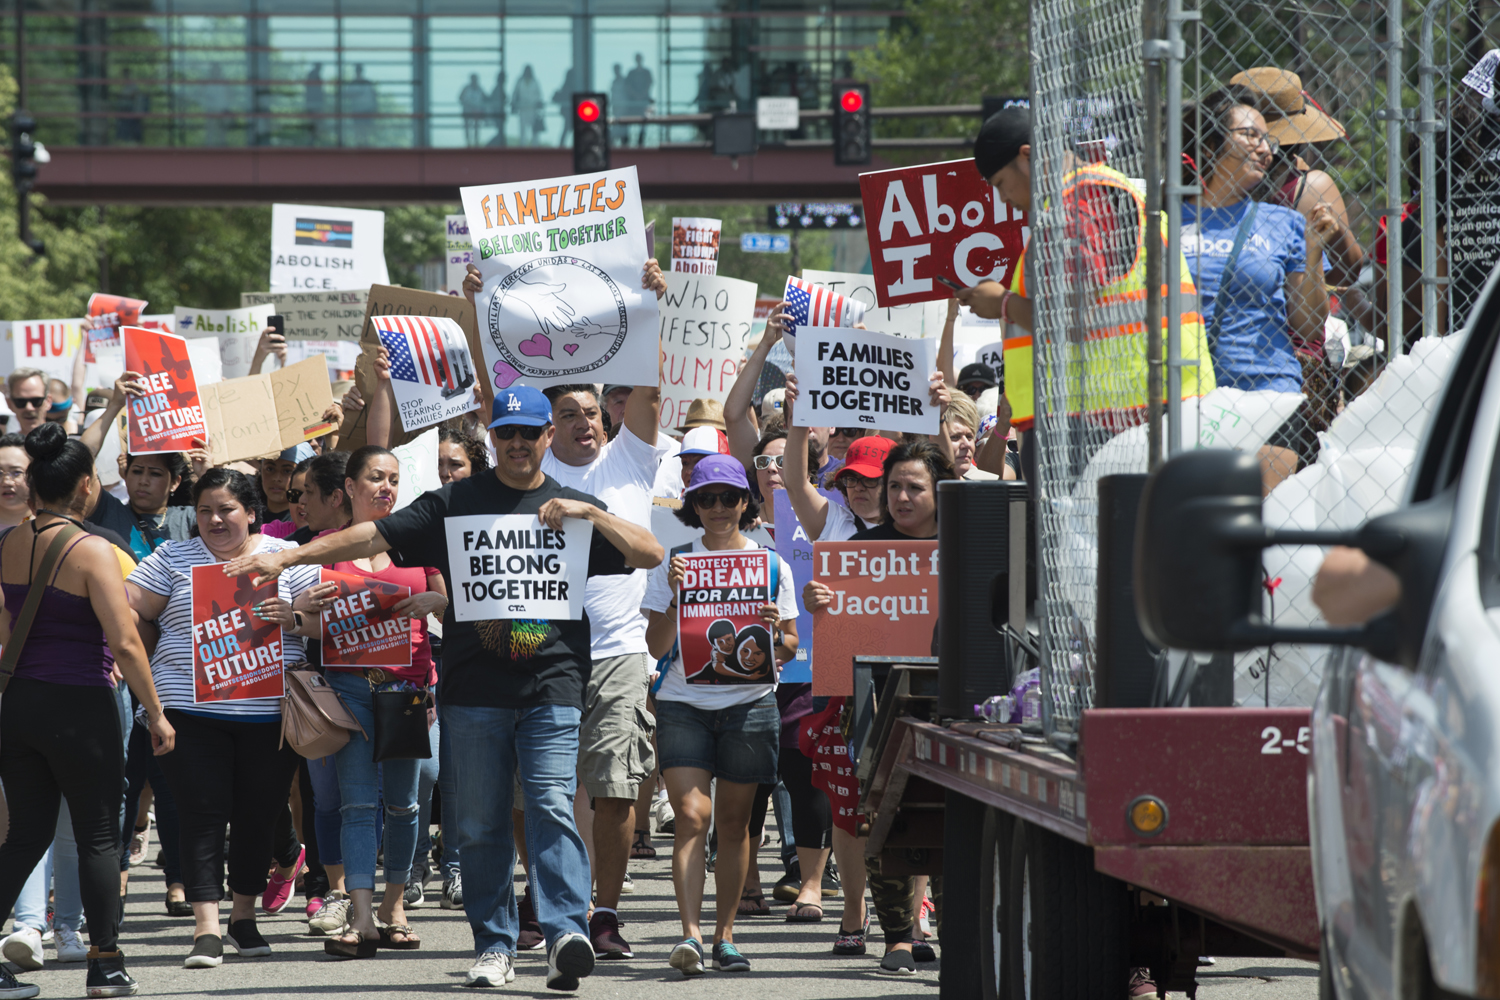 Several thousand people gathered in Minneapolis this June to call for the abolishment of U.S. Immigration and Customs Enforcement after policies enacted by the Trump administration separated migrant children from their parents.